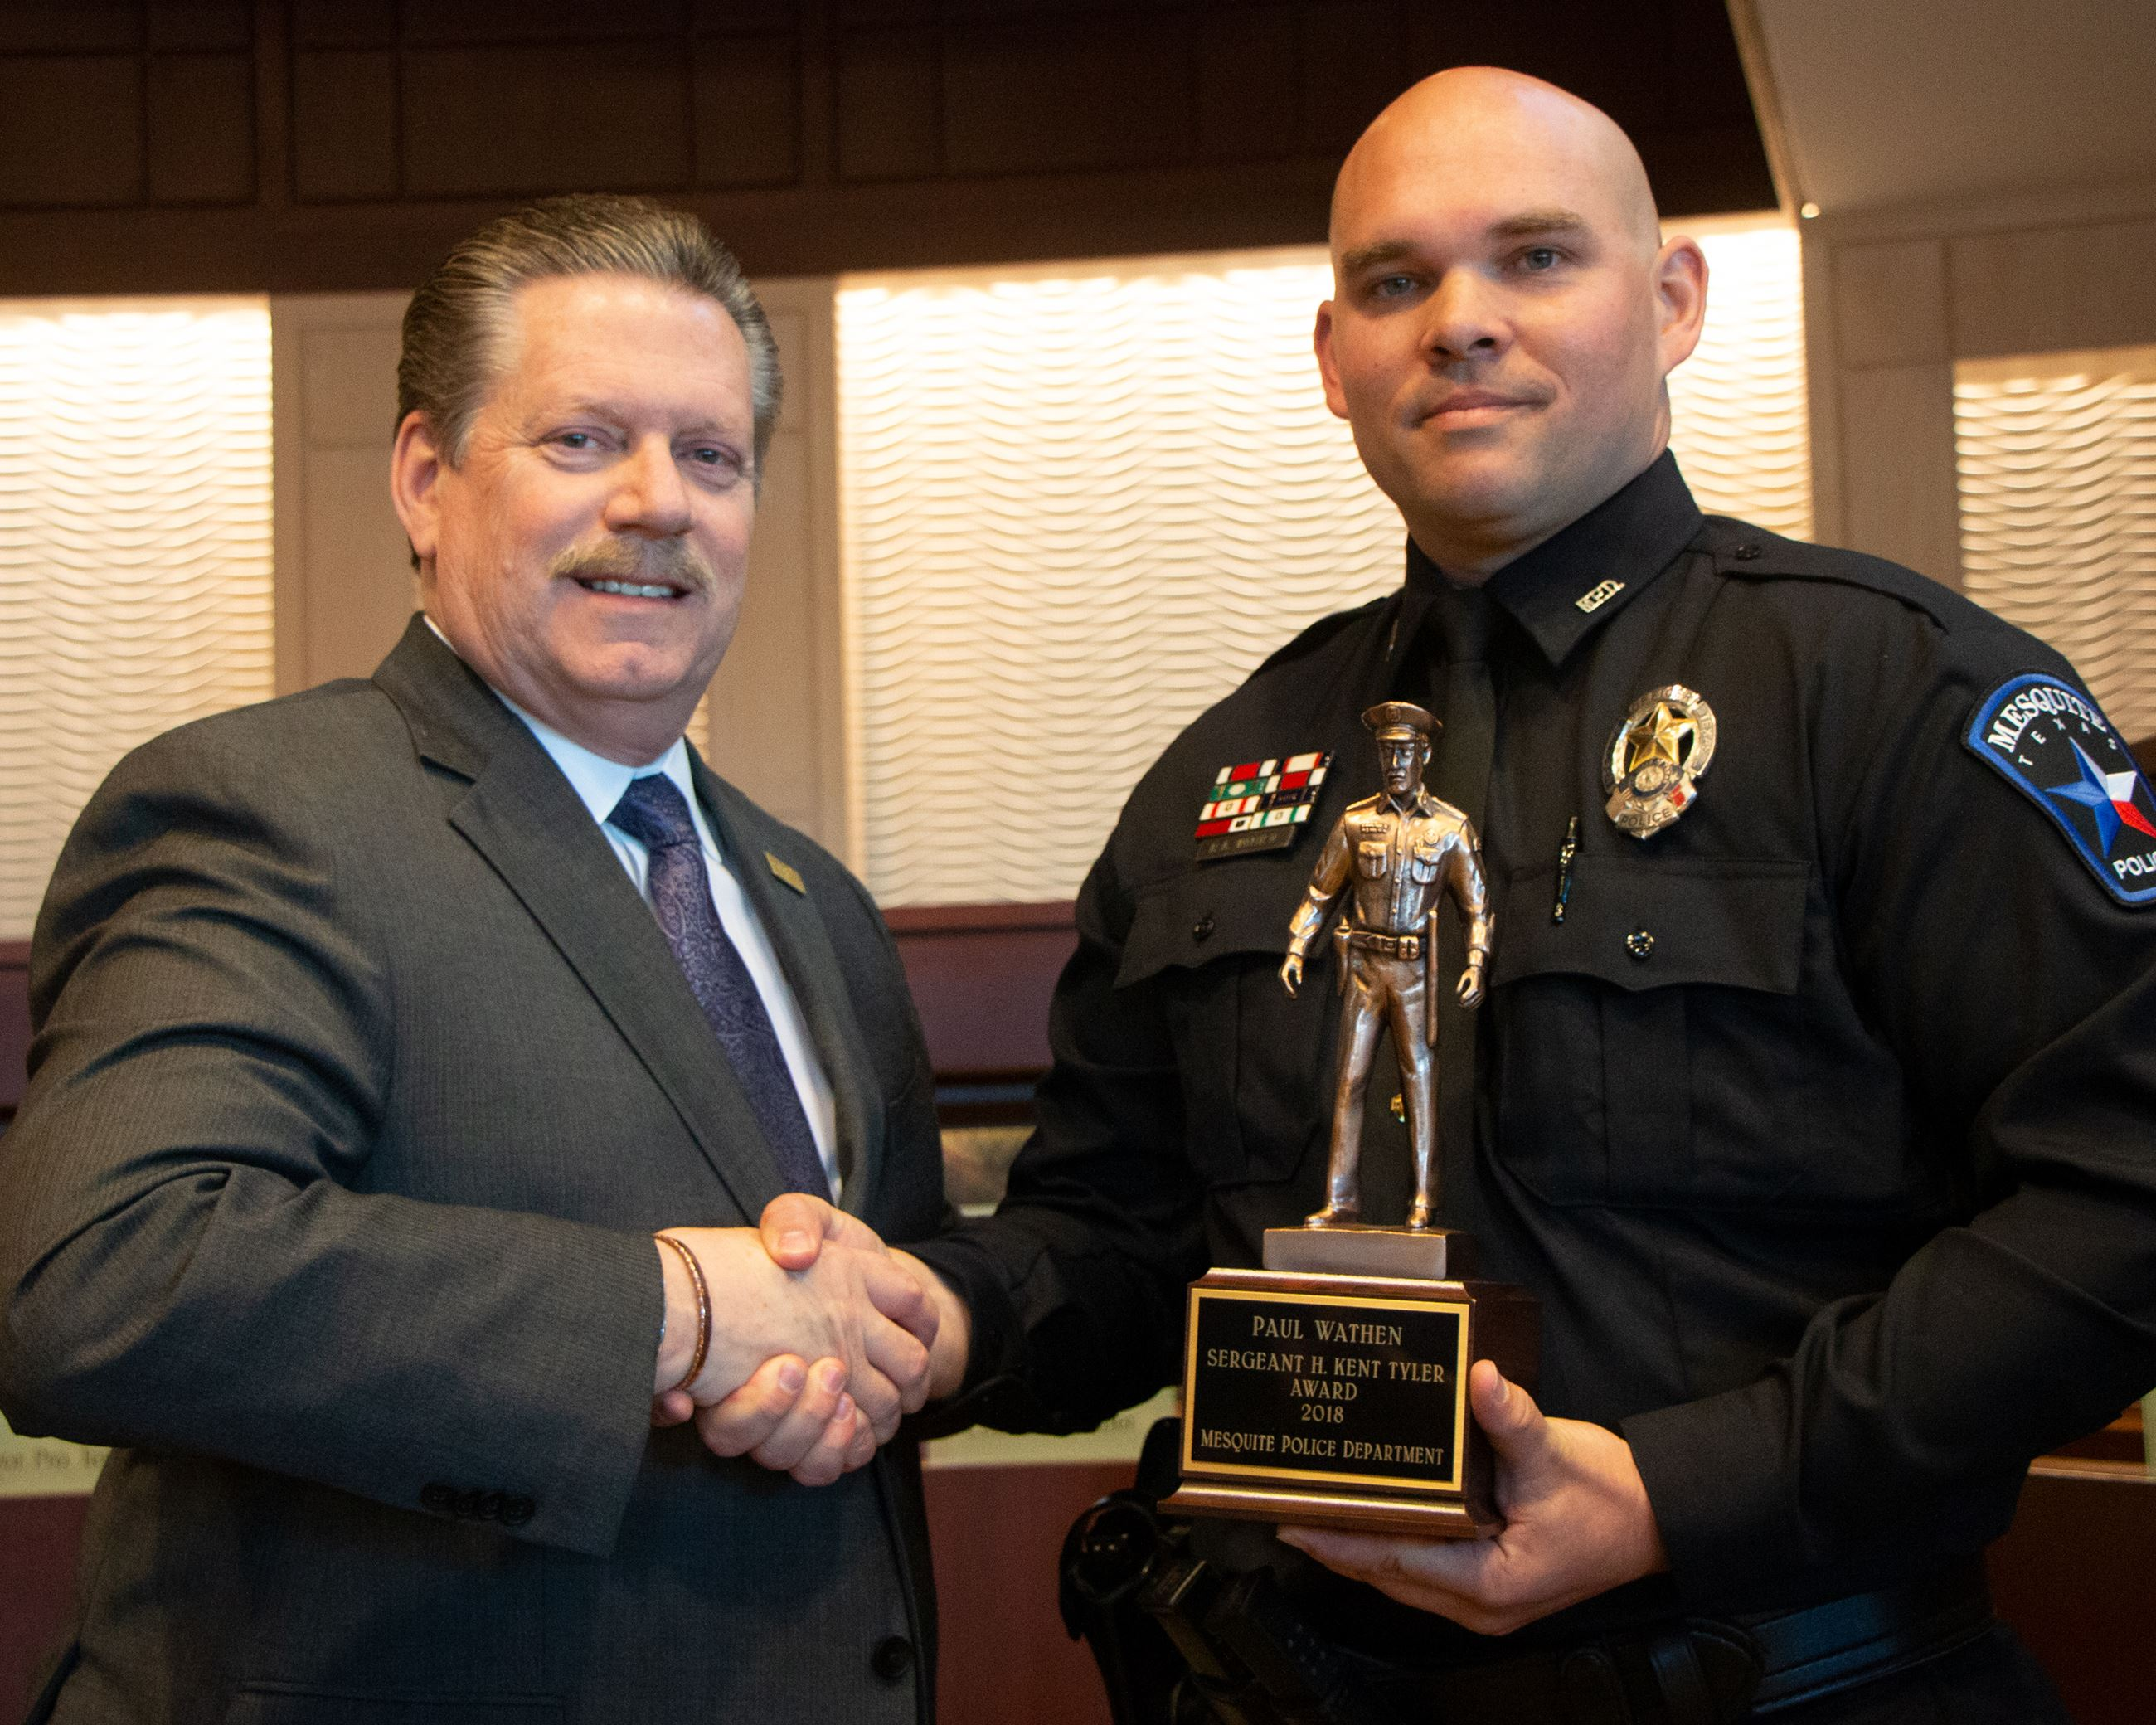 2019 Officer of the Year - Paul Wathen